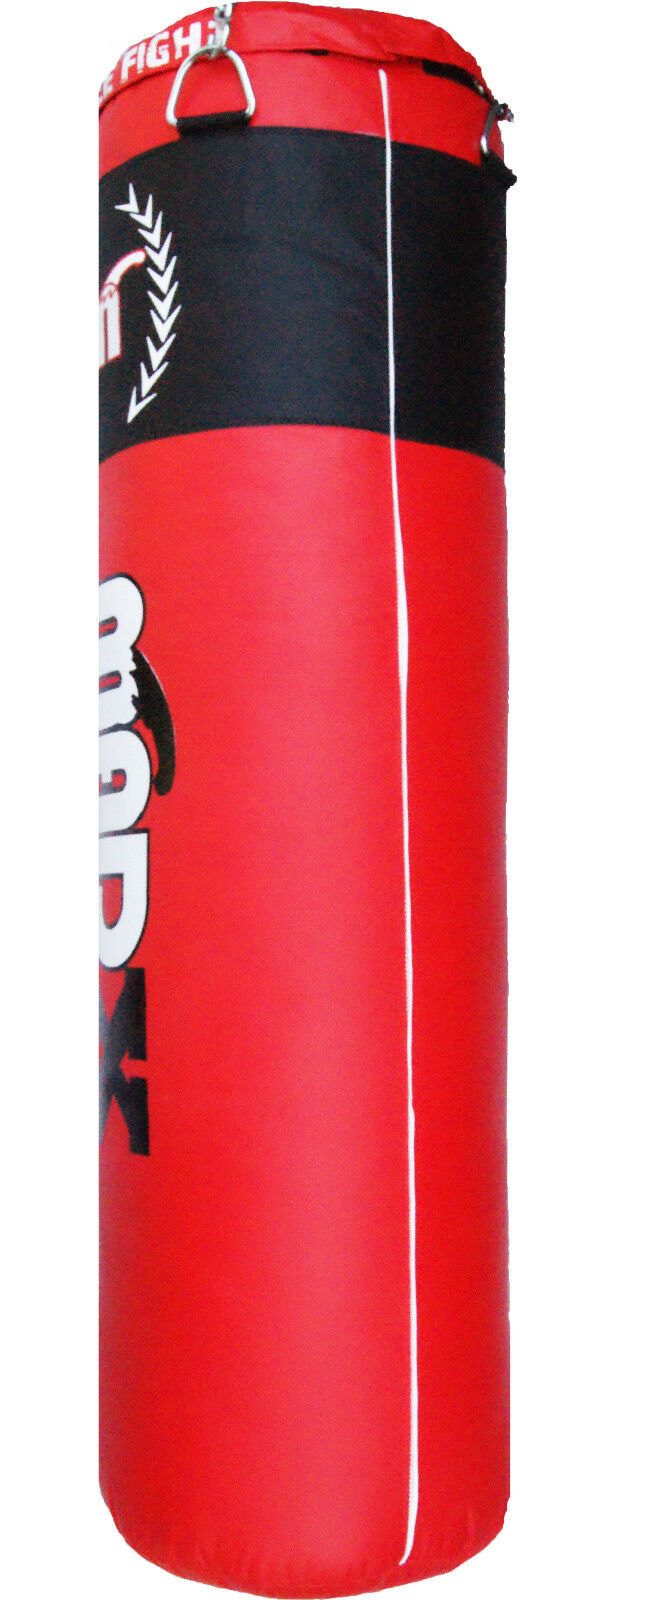 Punching Bag PDX 4FT//5FT Heavy Chain Set UnFilled MMA Training Strength Work Out